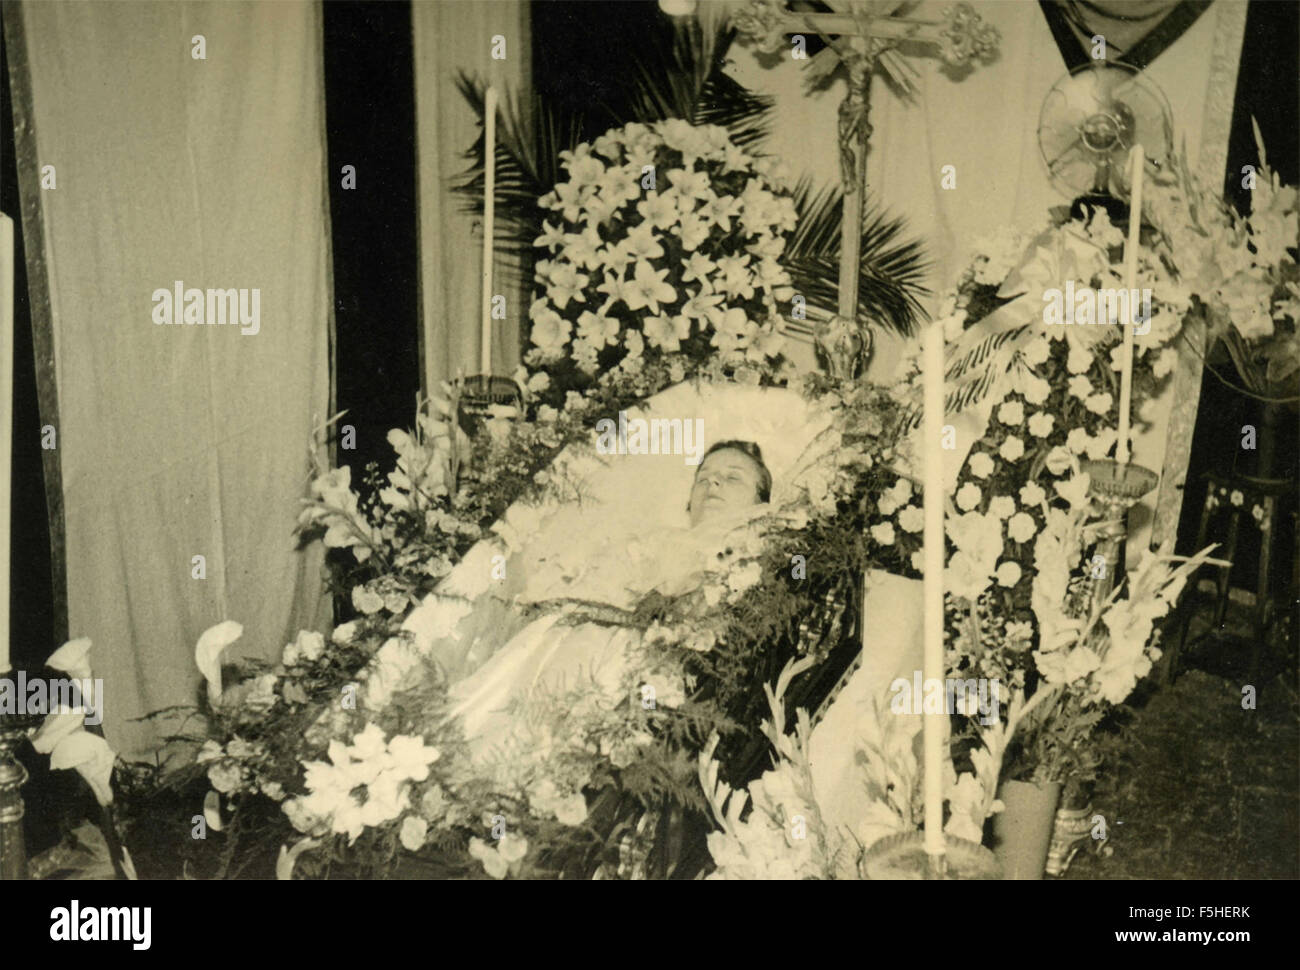 Exposure of the body to a funeral, Italy - Stock Image